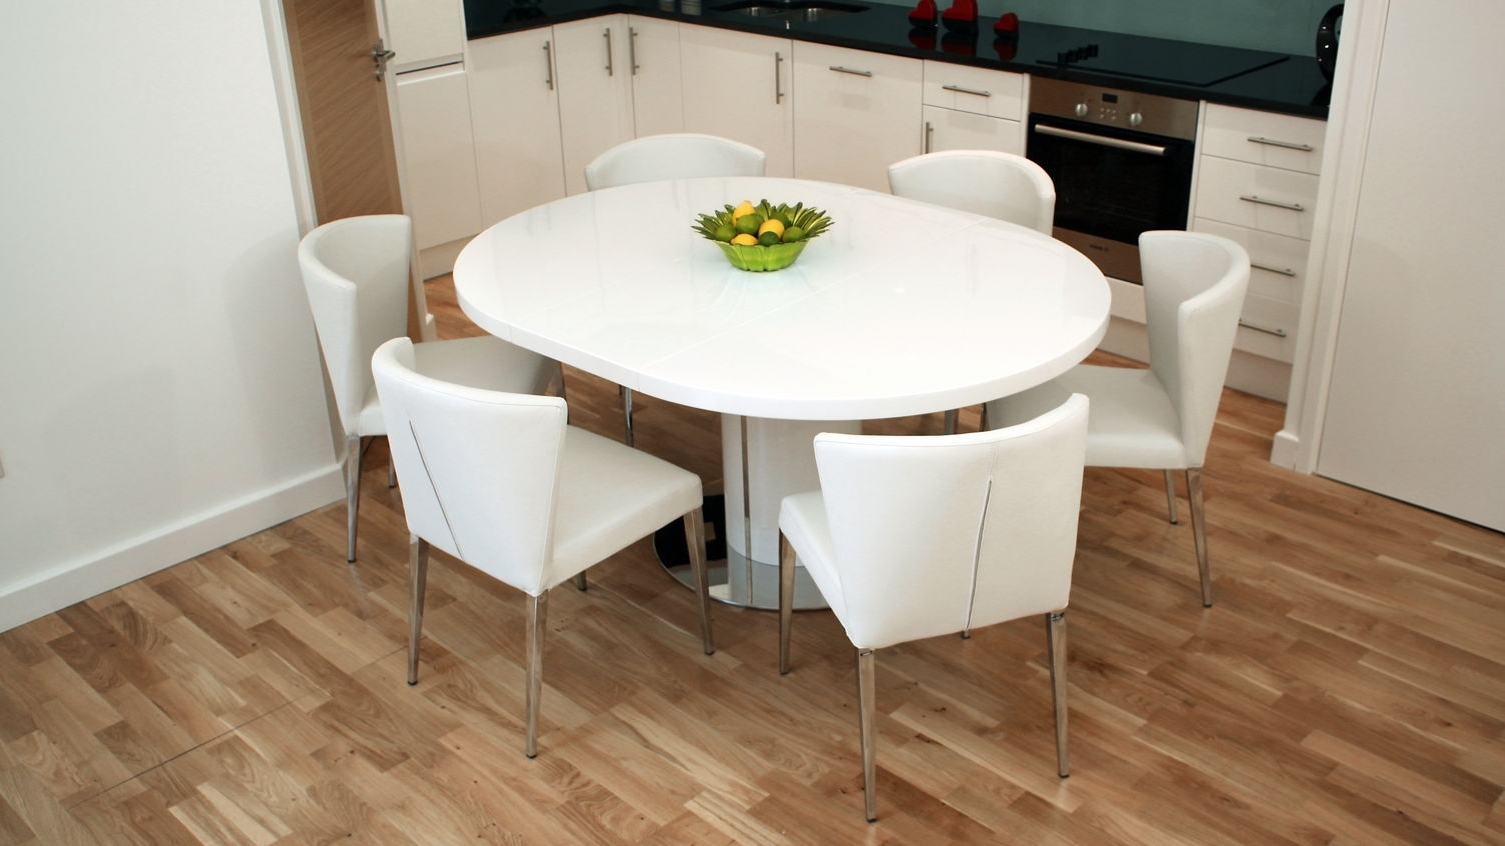 2018 Dining Tables: Interesting Small Round Extending Dining Table Oak Intended For Small White Extending Dining Tables (View 4 of 25)